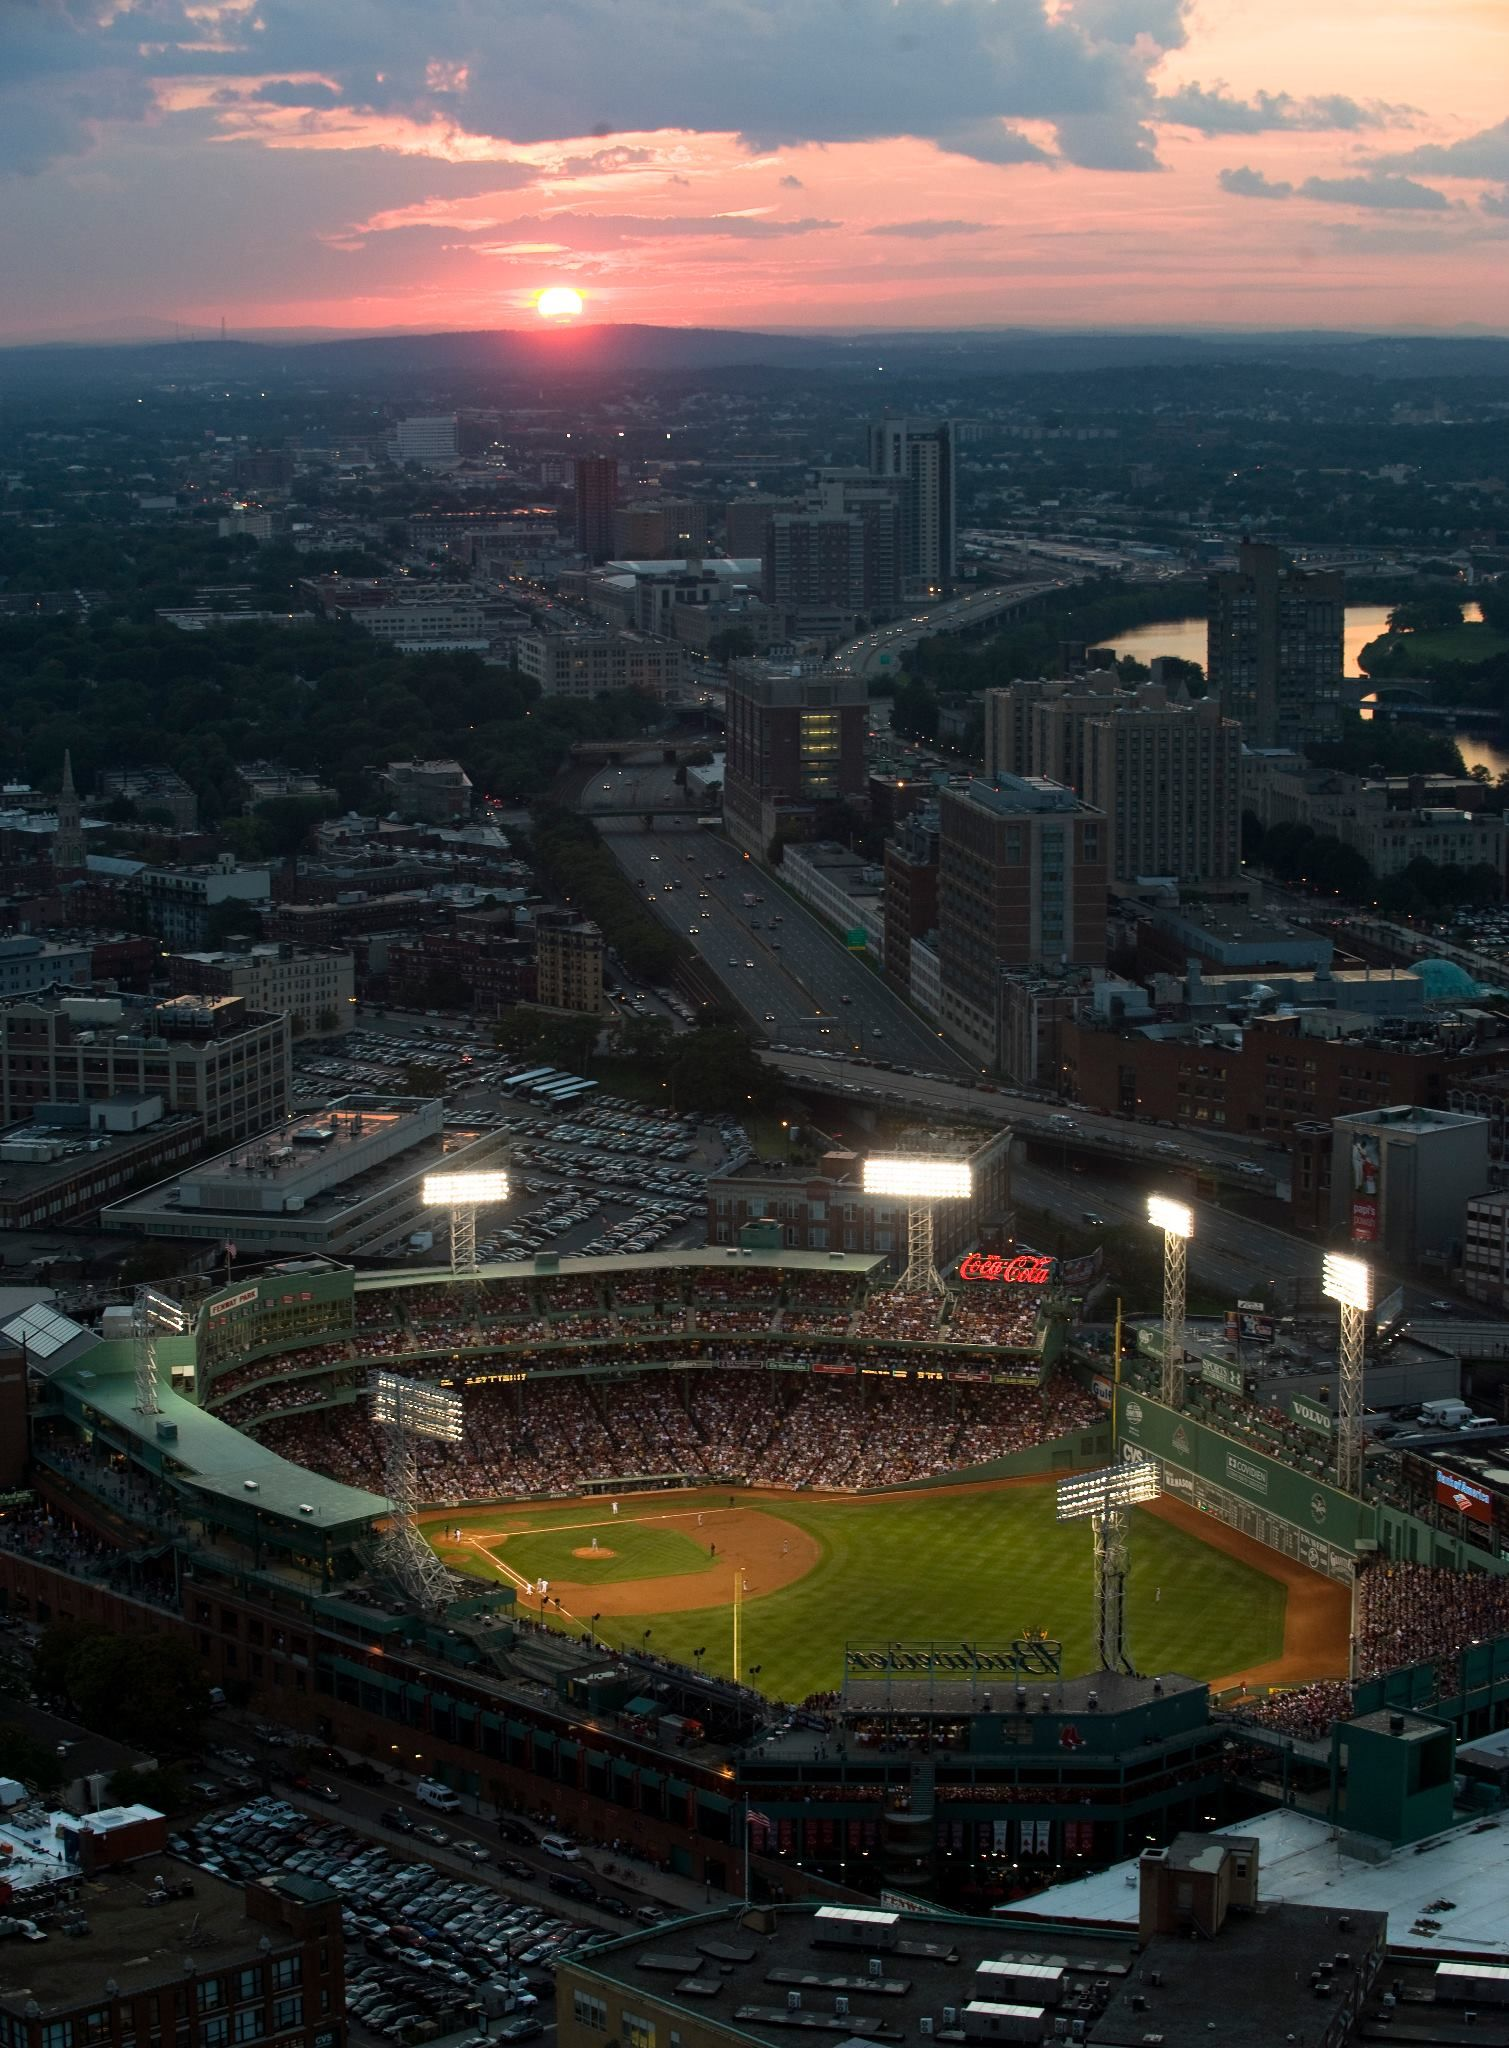 aerial: fenway park; 1912- : boston red sox | Red sox | Pinterest ...